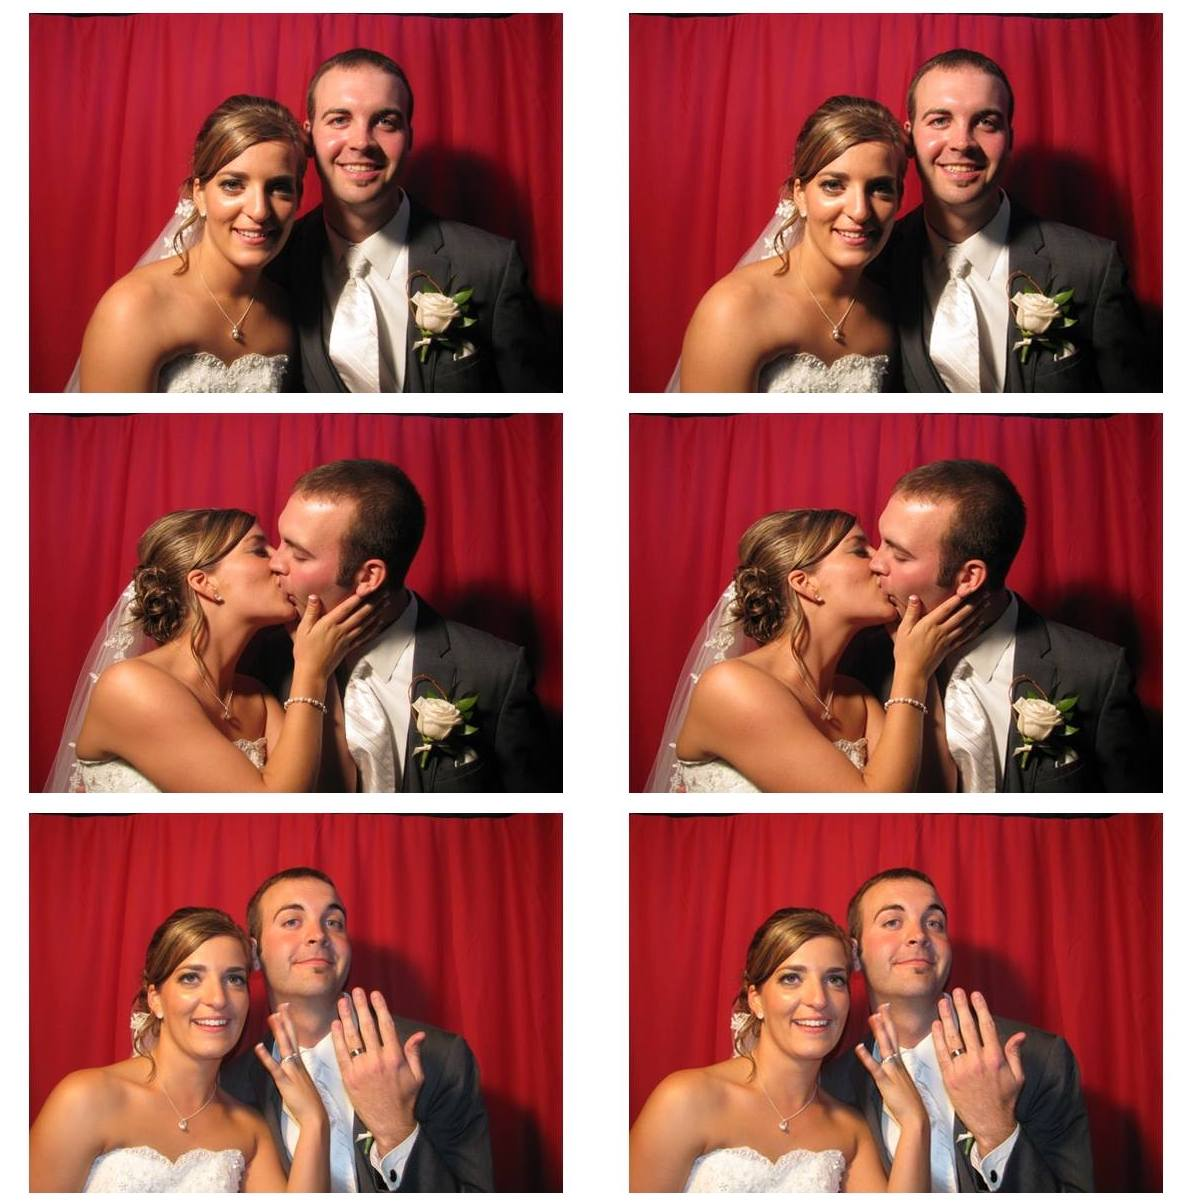 Photo Booth Rental Green Bay Wi Bride and Groom Photo